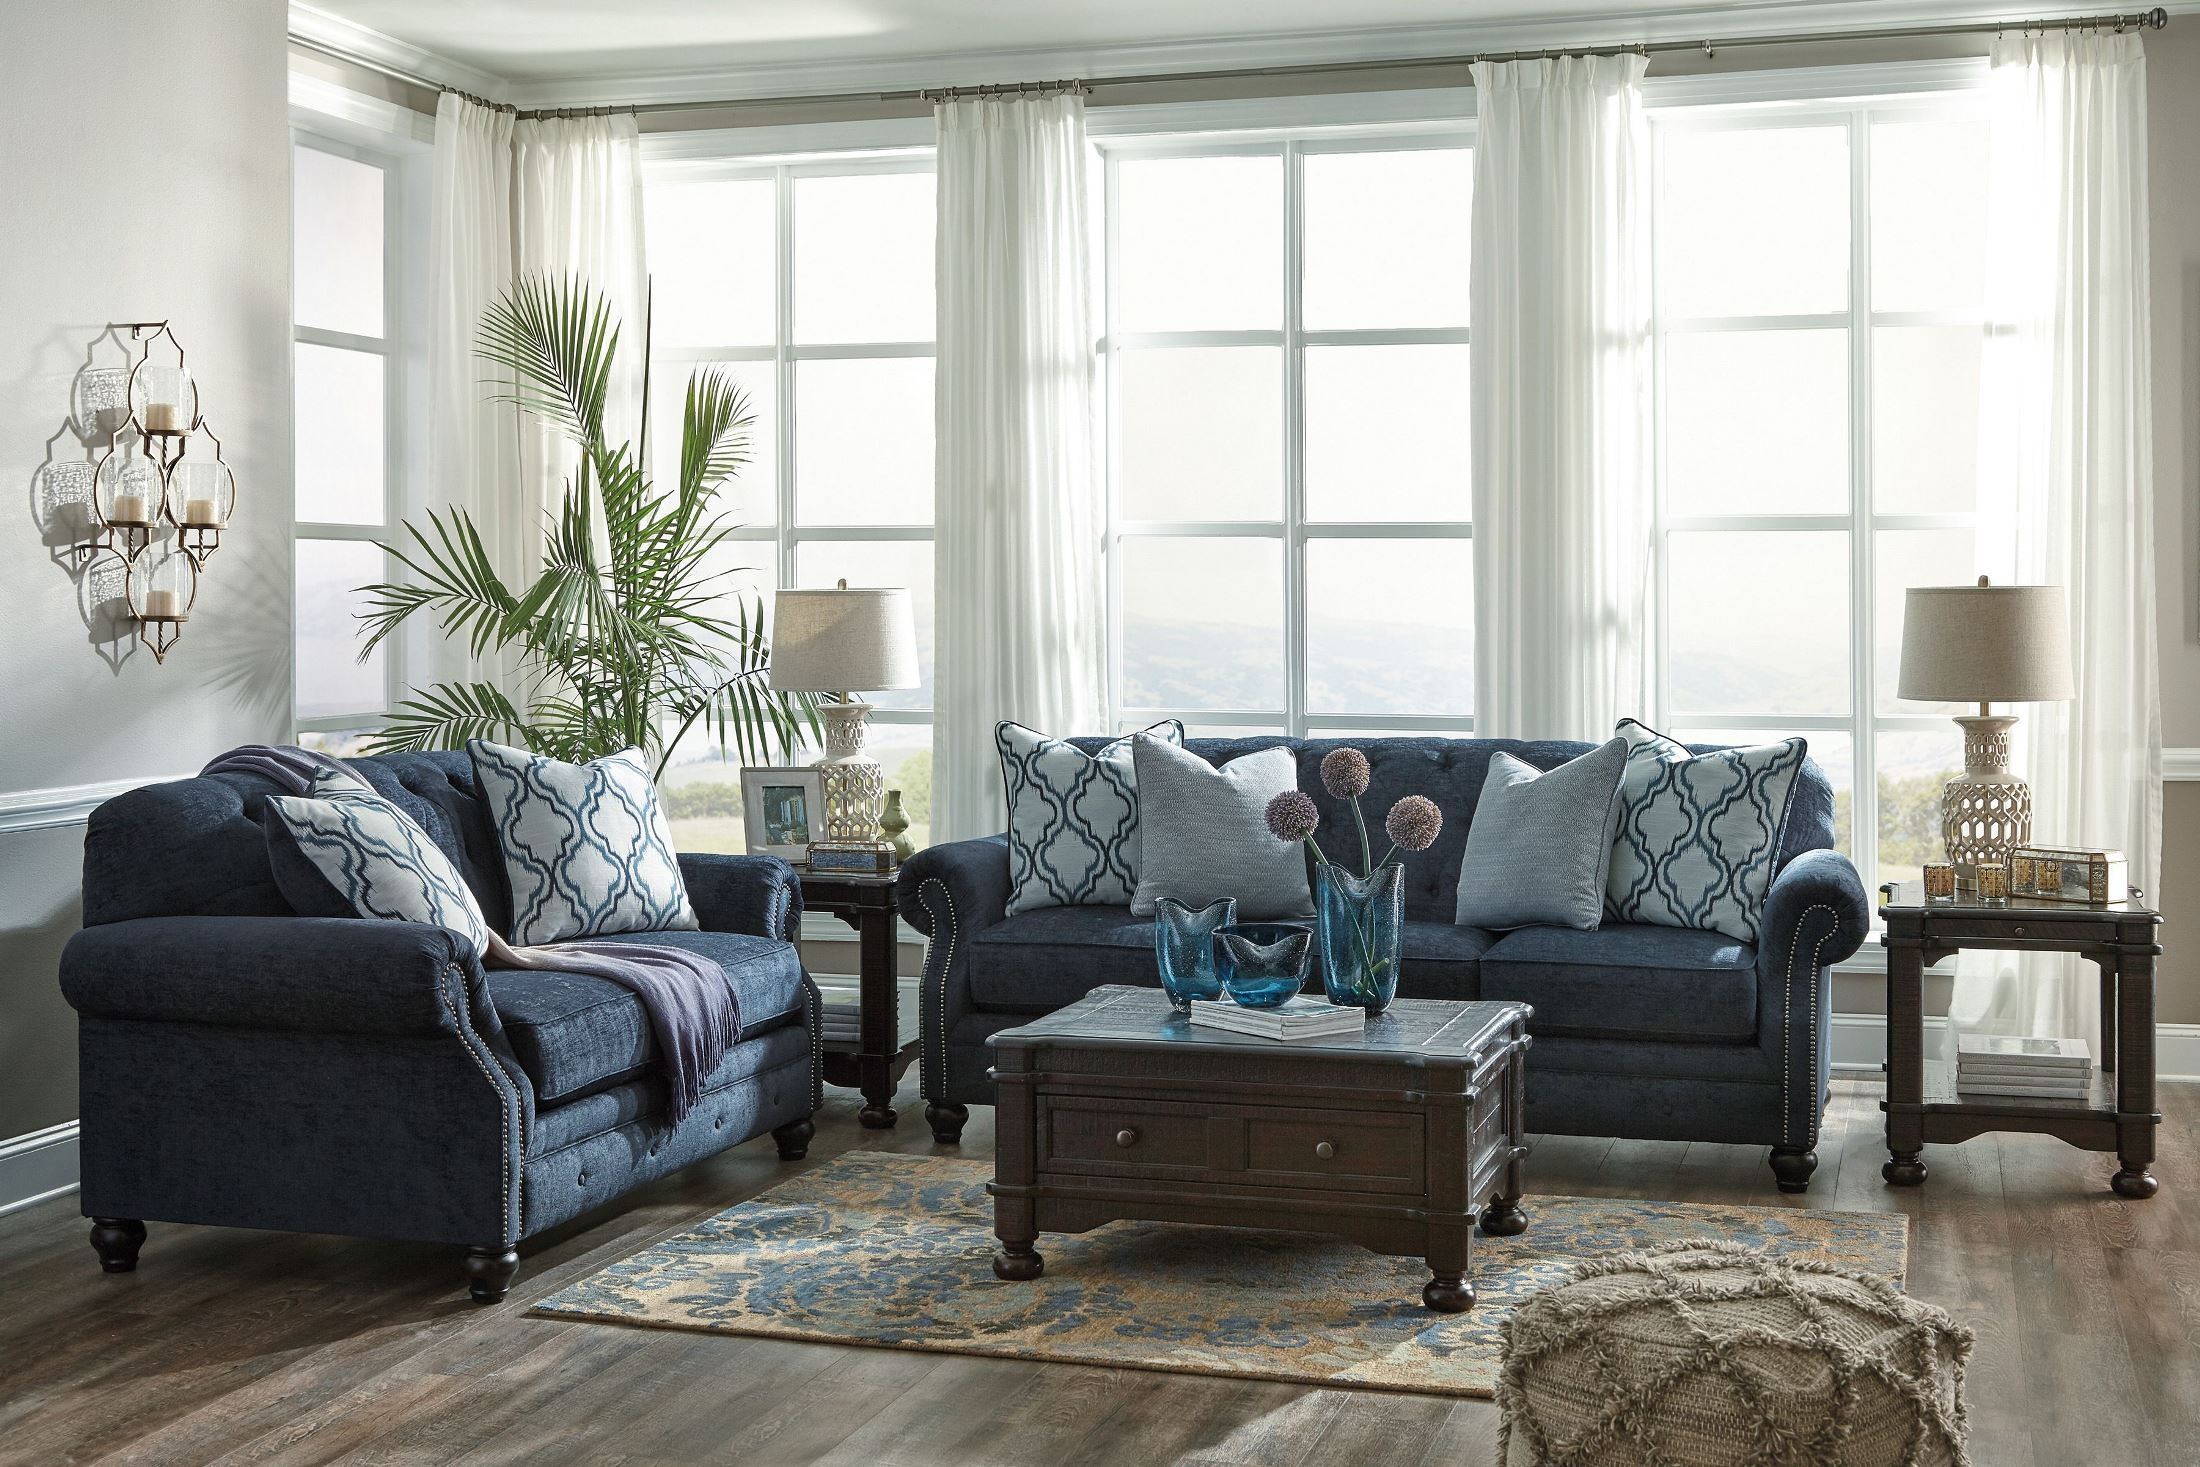 Living Room Furniture: LaVernia Navy Living Room Set From Ashley